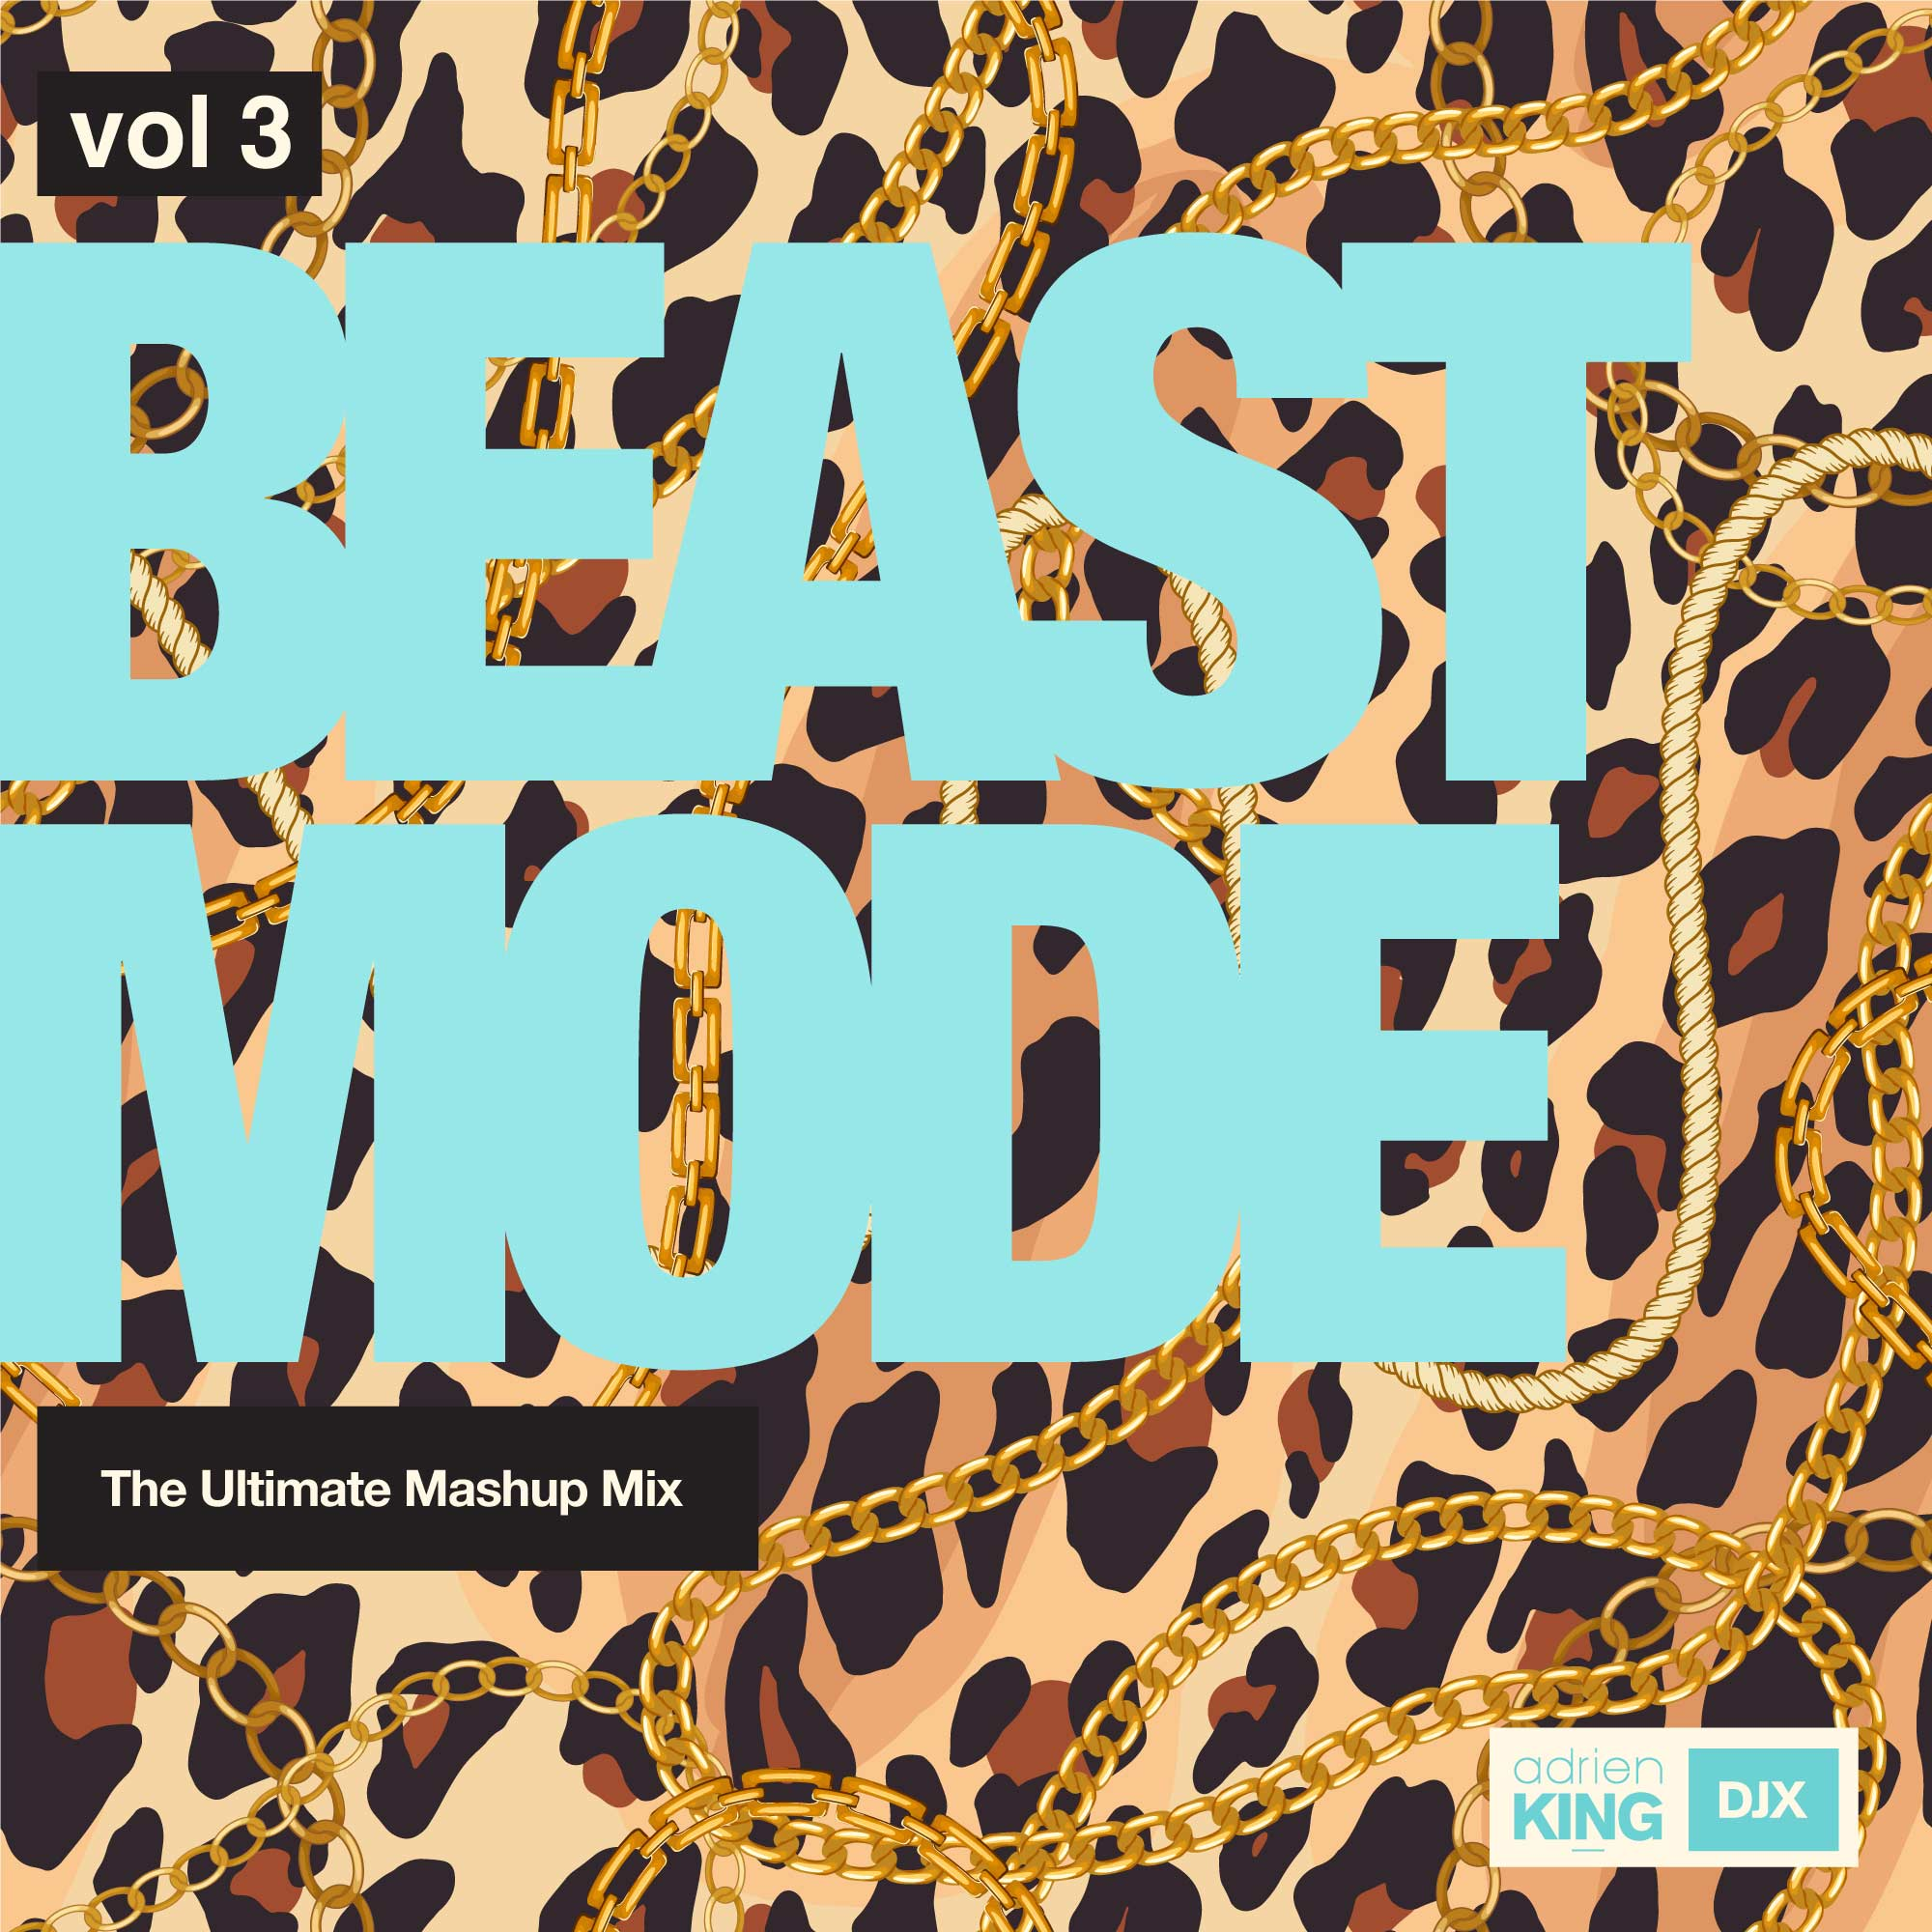 Beast Mode – The Ultimate Mashup Mix Vol 3